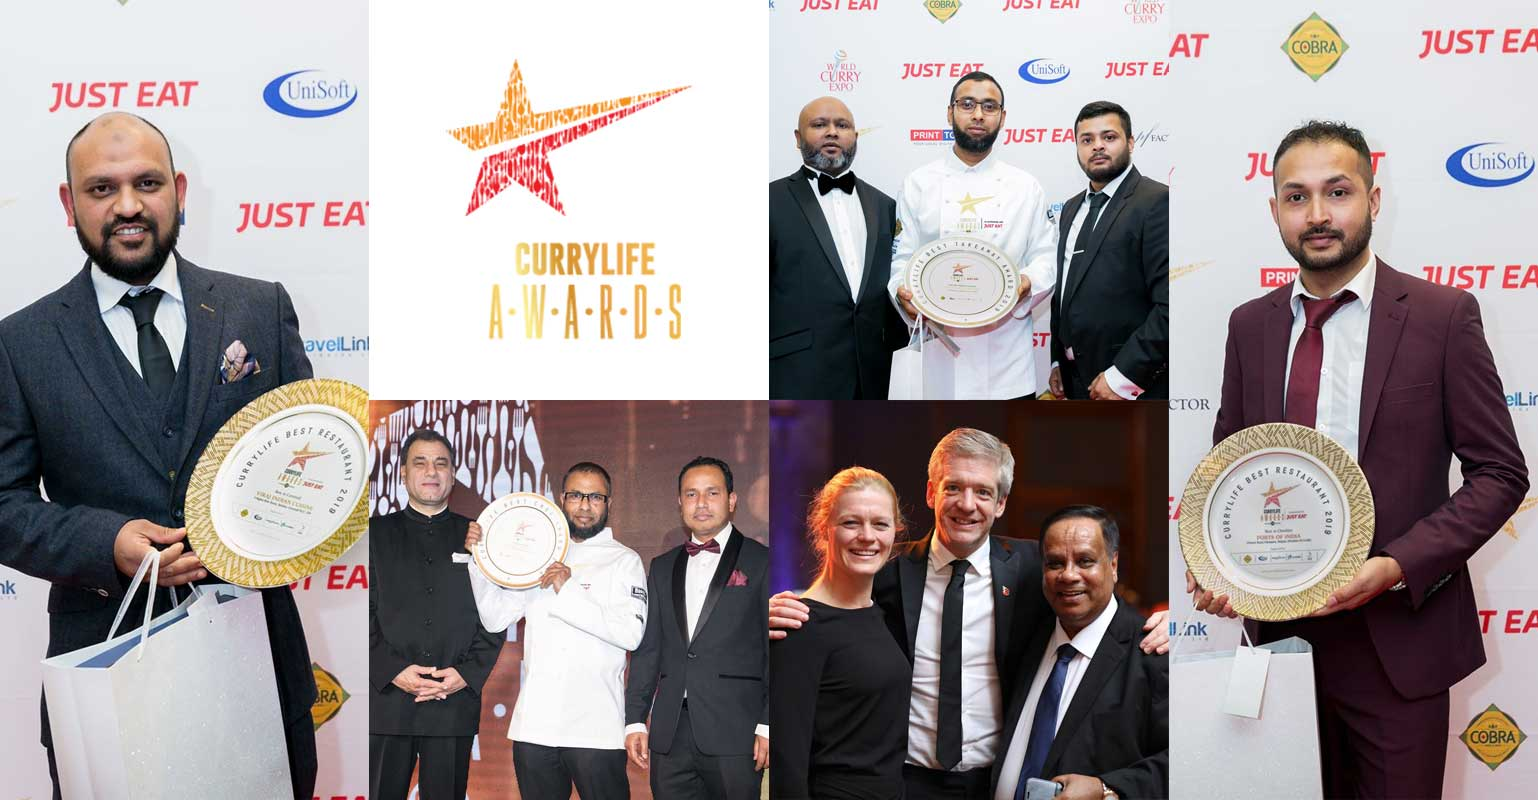 Halal Among The Winners Of The Curry Life Awards 2019 Feed